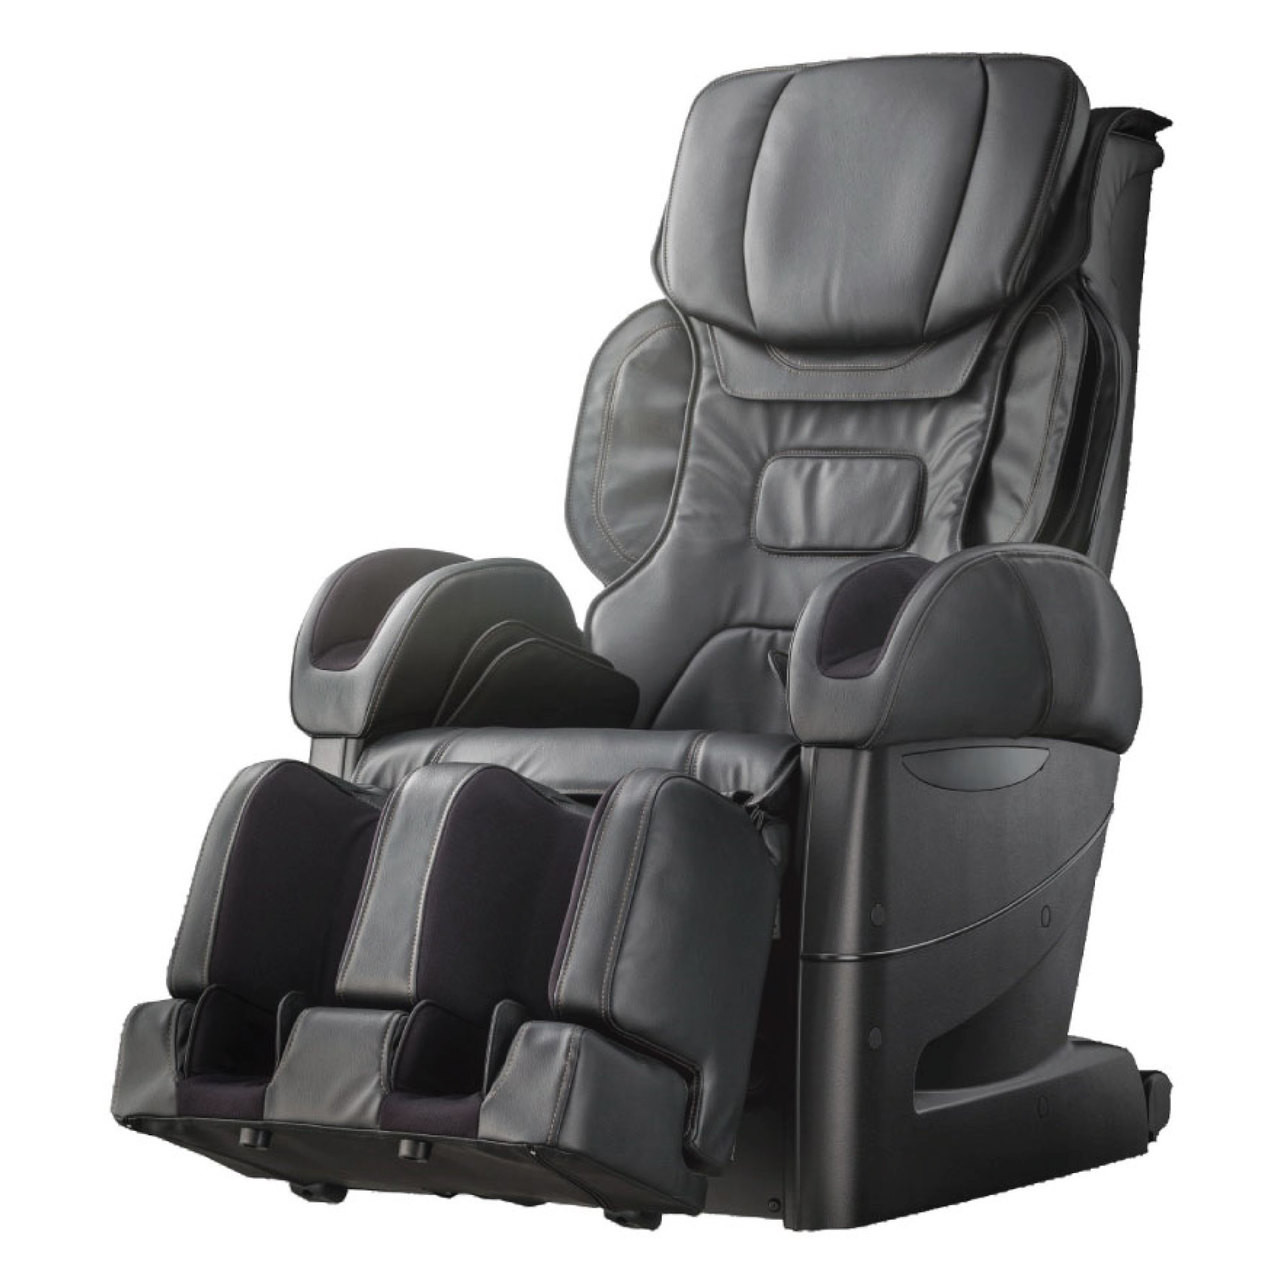 osaki 7075r massage chair purple sashes os 4d pro jp free shipping options unwind com premium with technology